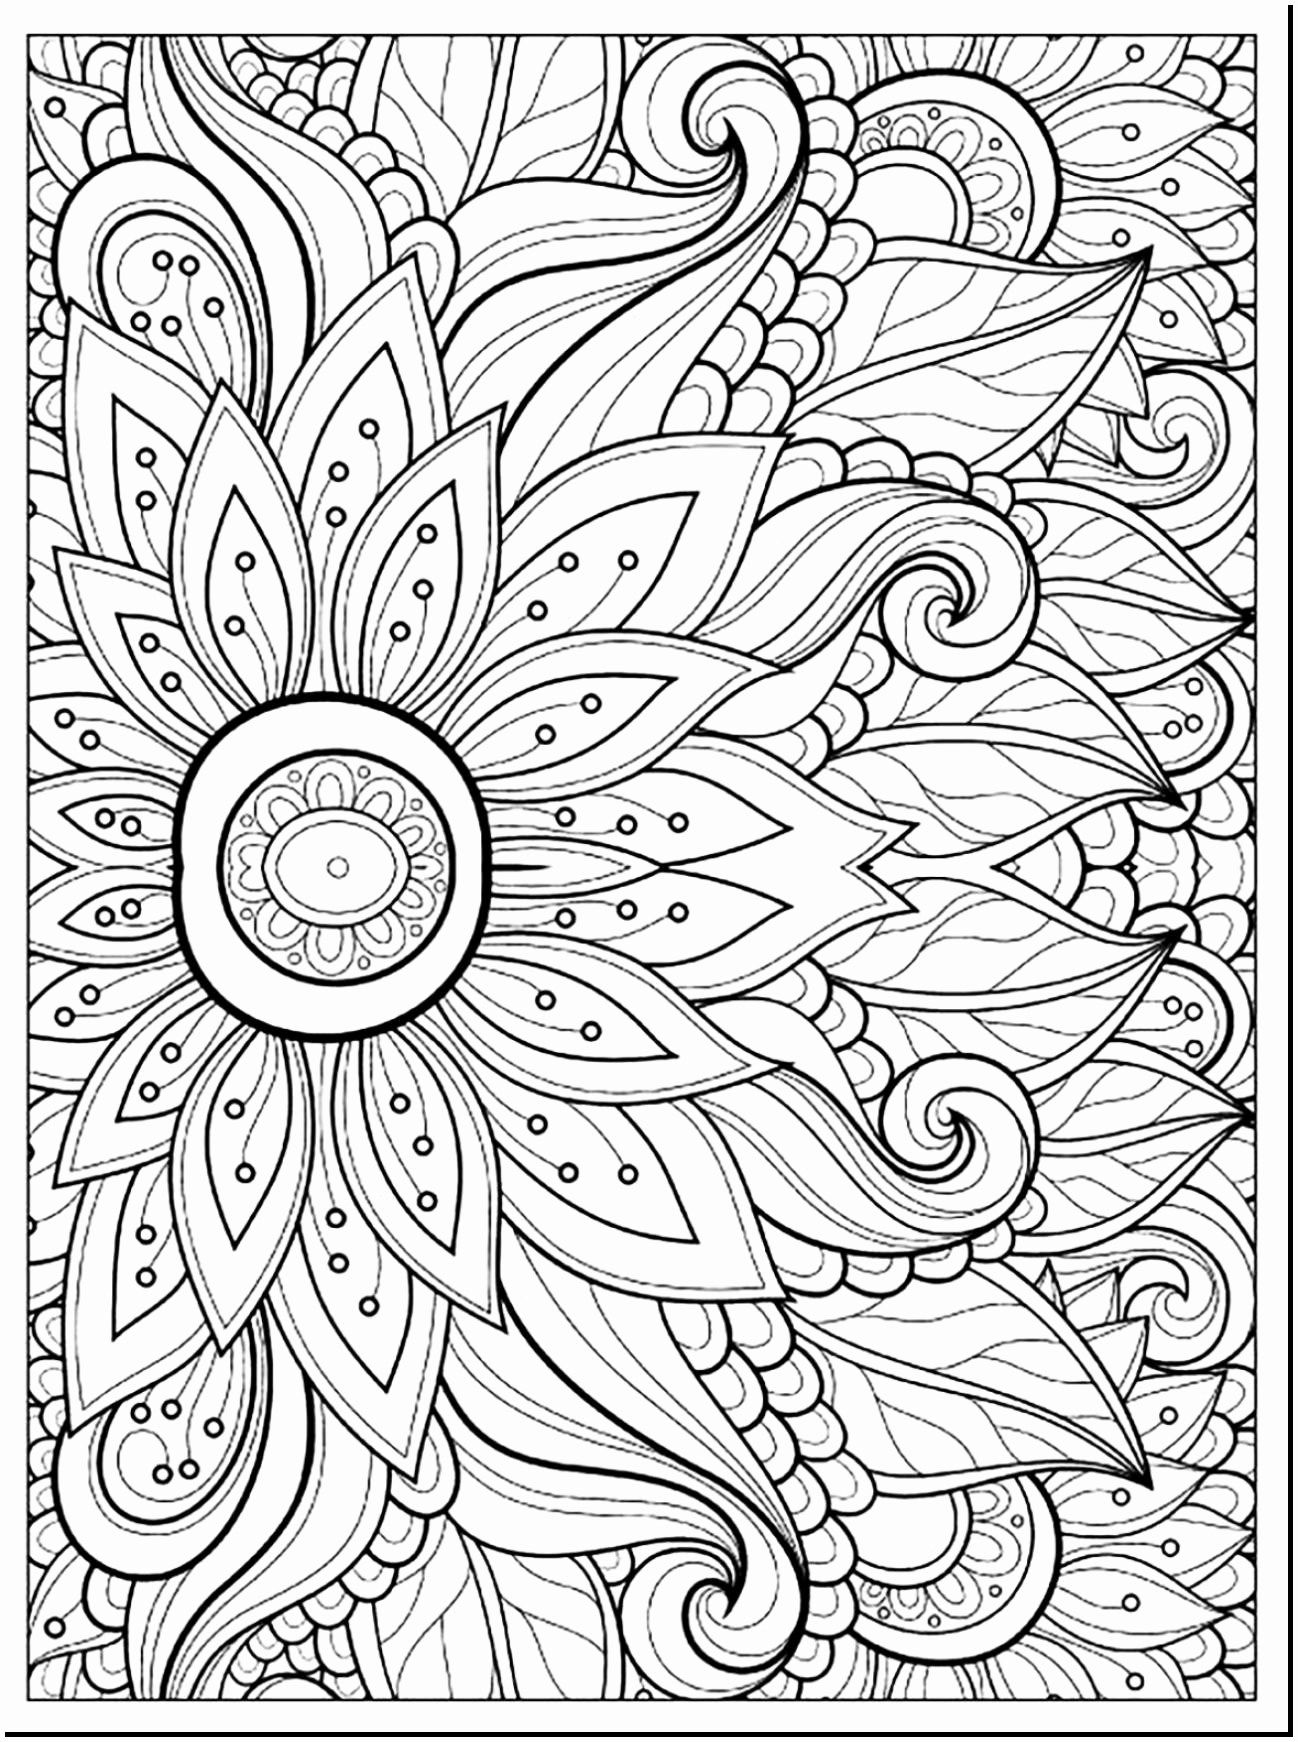 Advanced Coloring Pages Flowers Coloring Pages Coloring Page